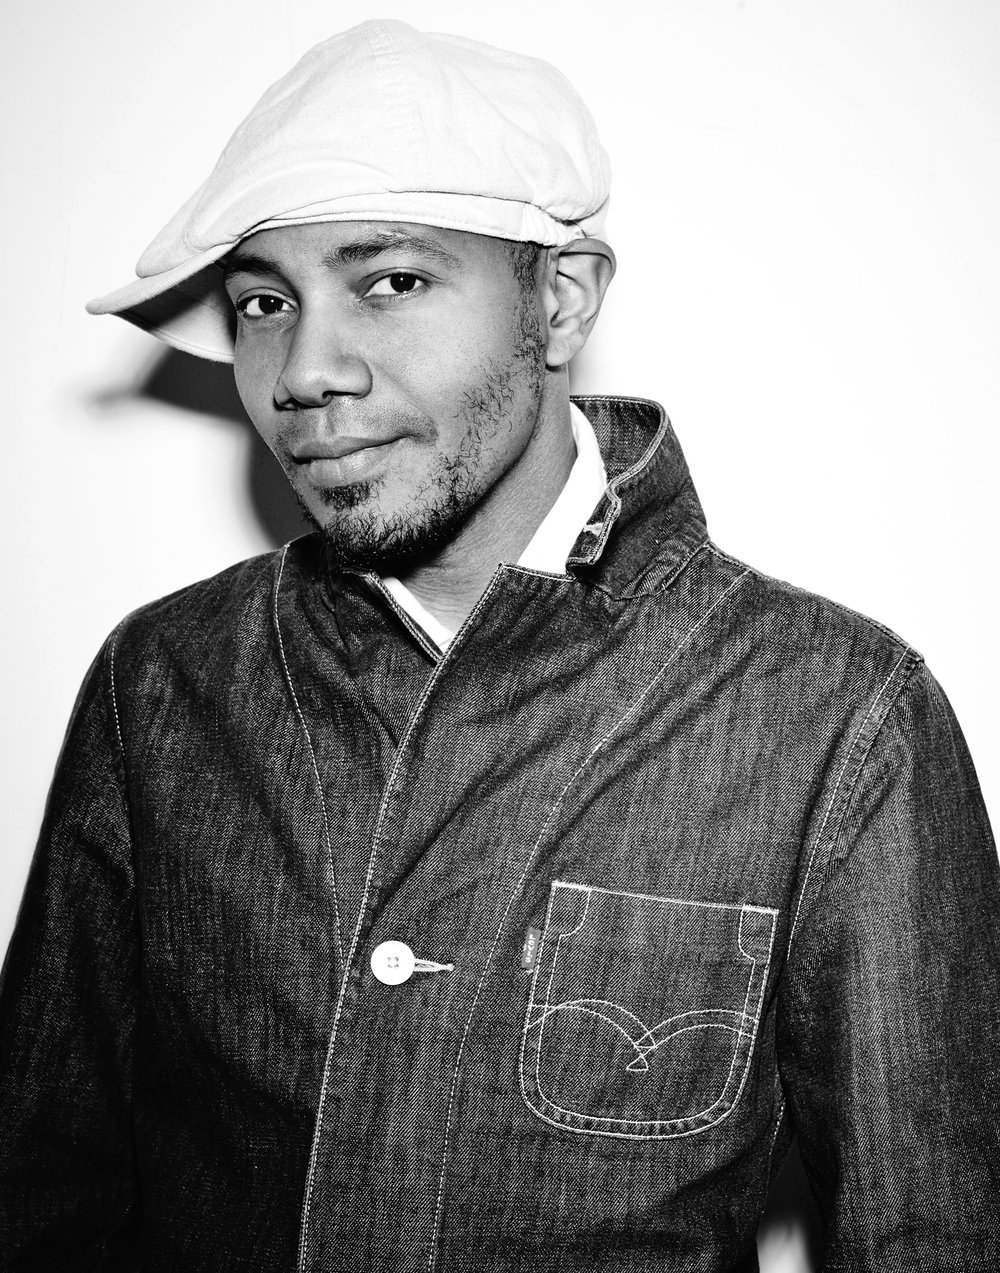 Copy of PAUL MILLER aka DJ SPOOKY